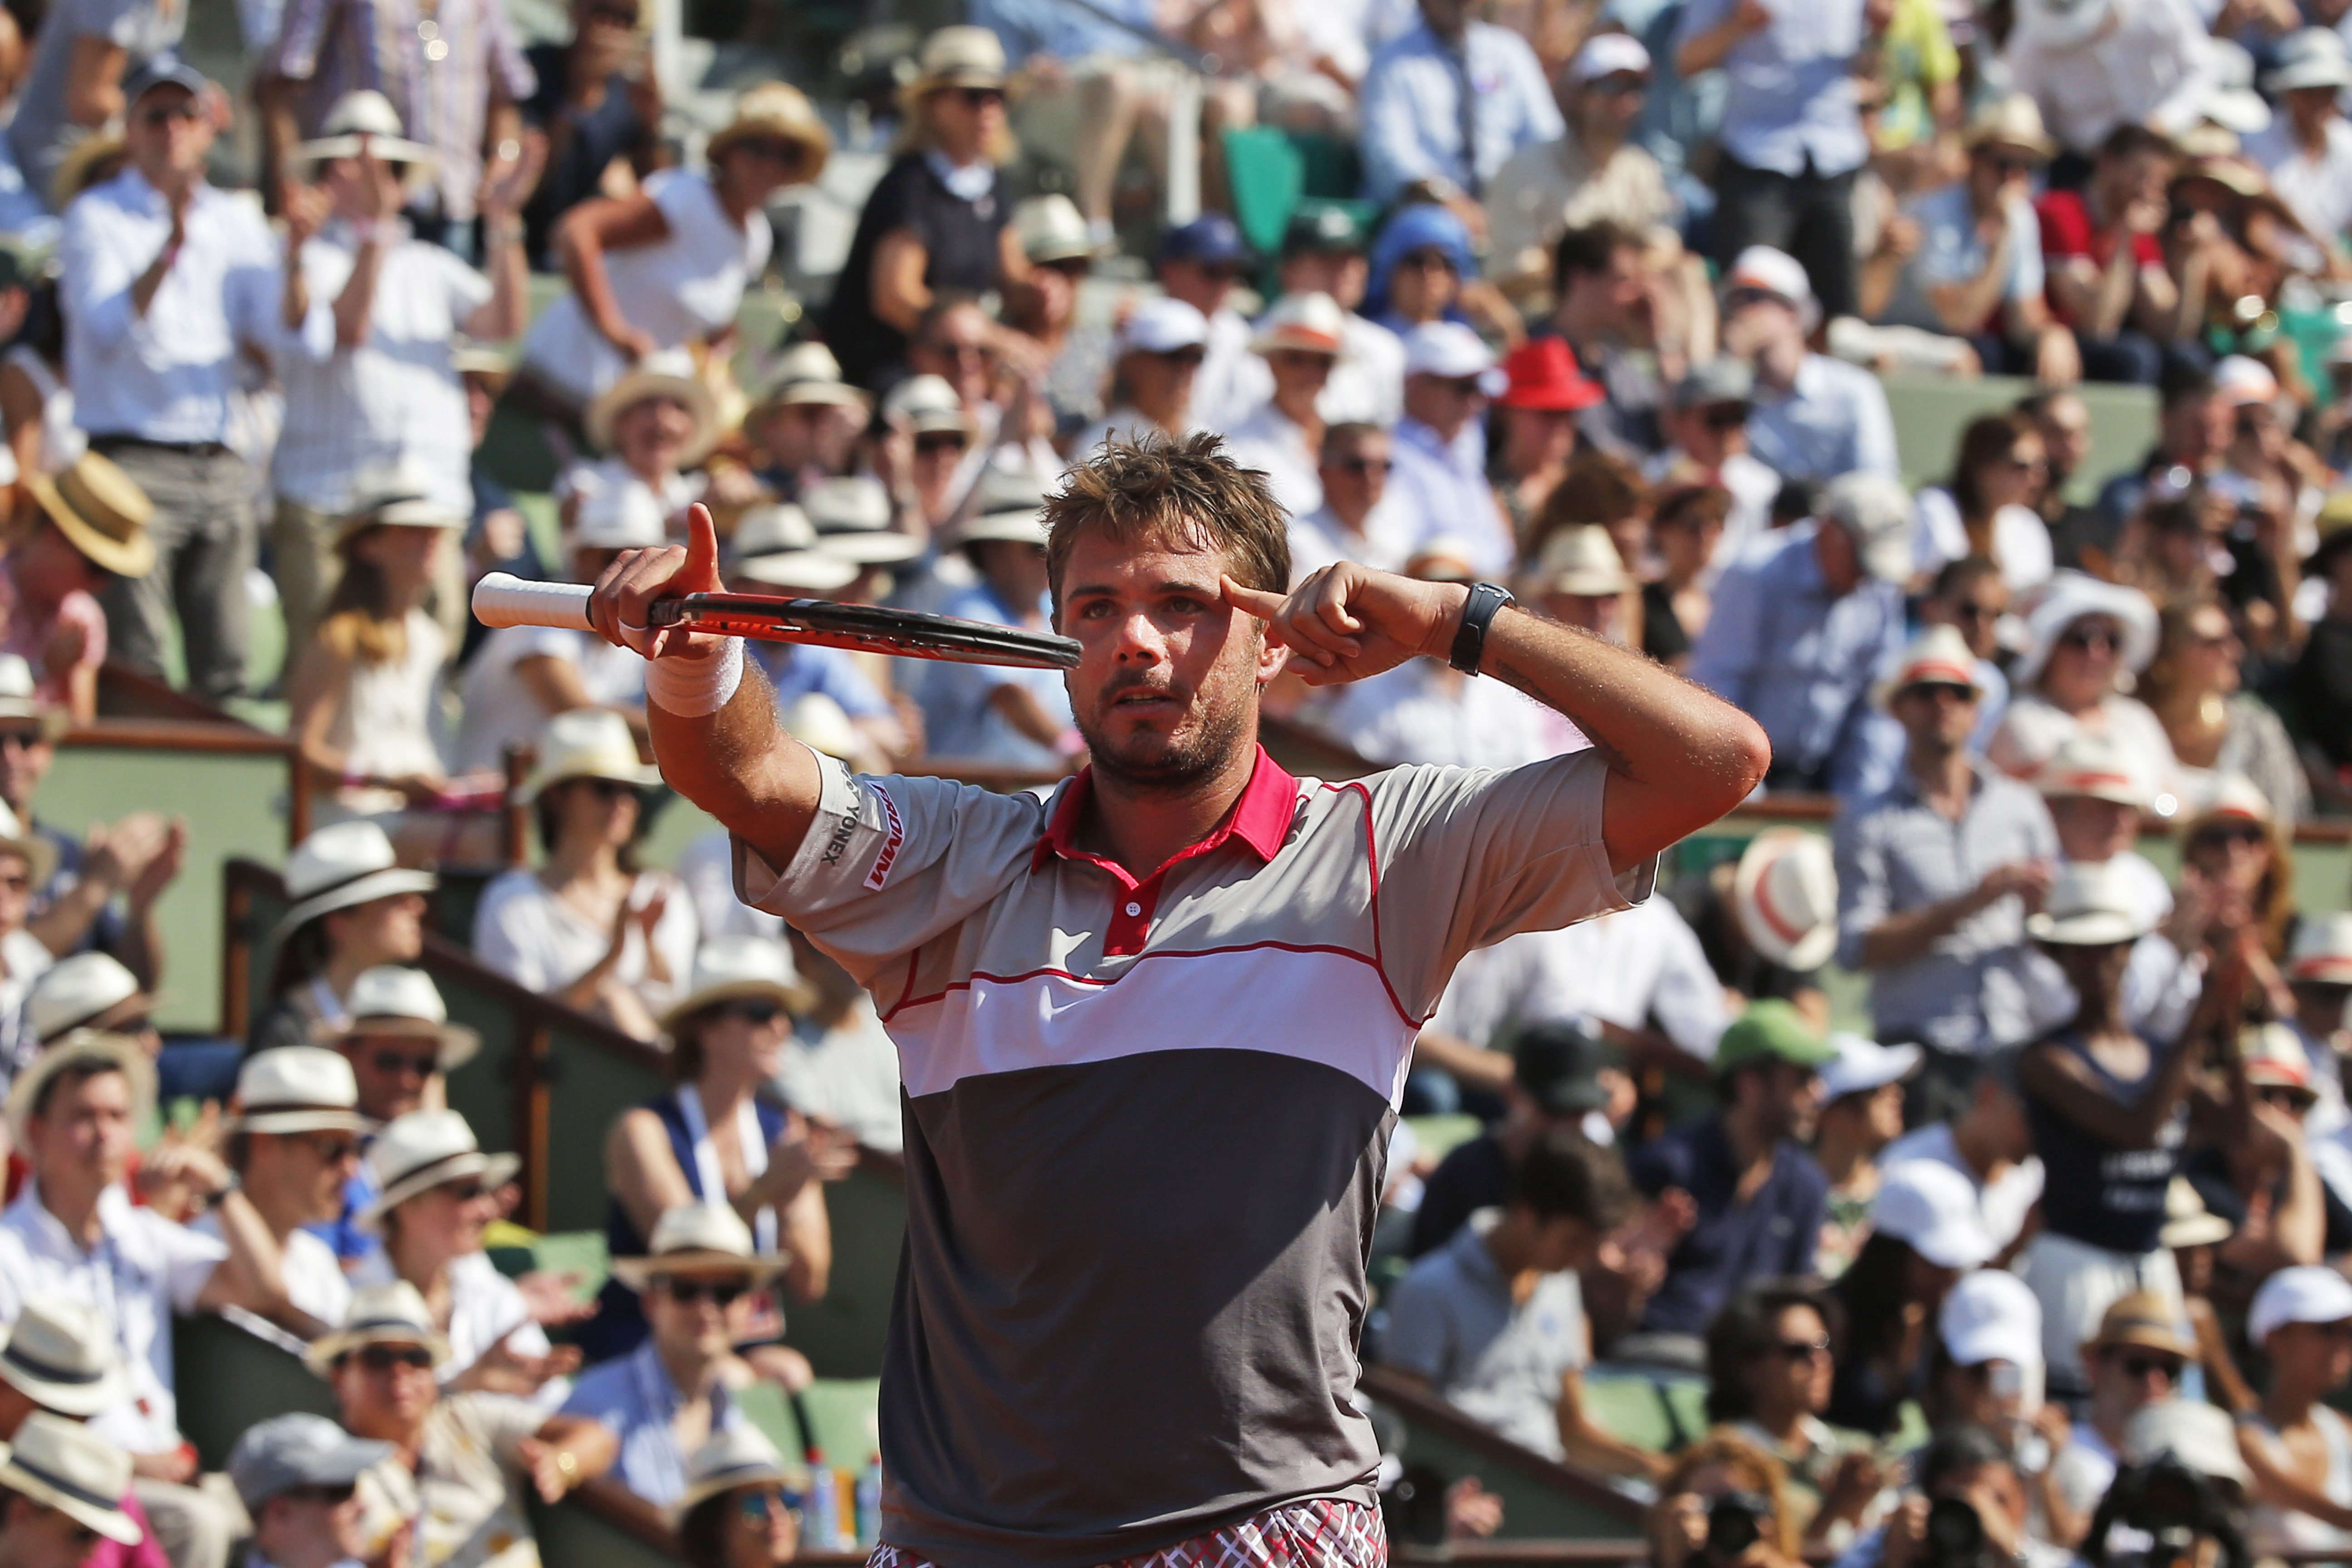 Switzerland's Stan Wawrinka celebrates winning the semifinal match of the French Open tennis tournament against France's Jo-Wilfried Tsonga in four sets 6-3, 6-7, 7-6, 6-4, at the Roland Garros stadium, in Paris, France, Friday, June 5, 2015. (AP Photo/Mi